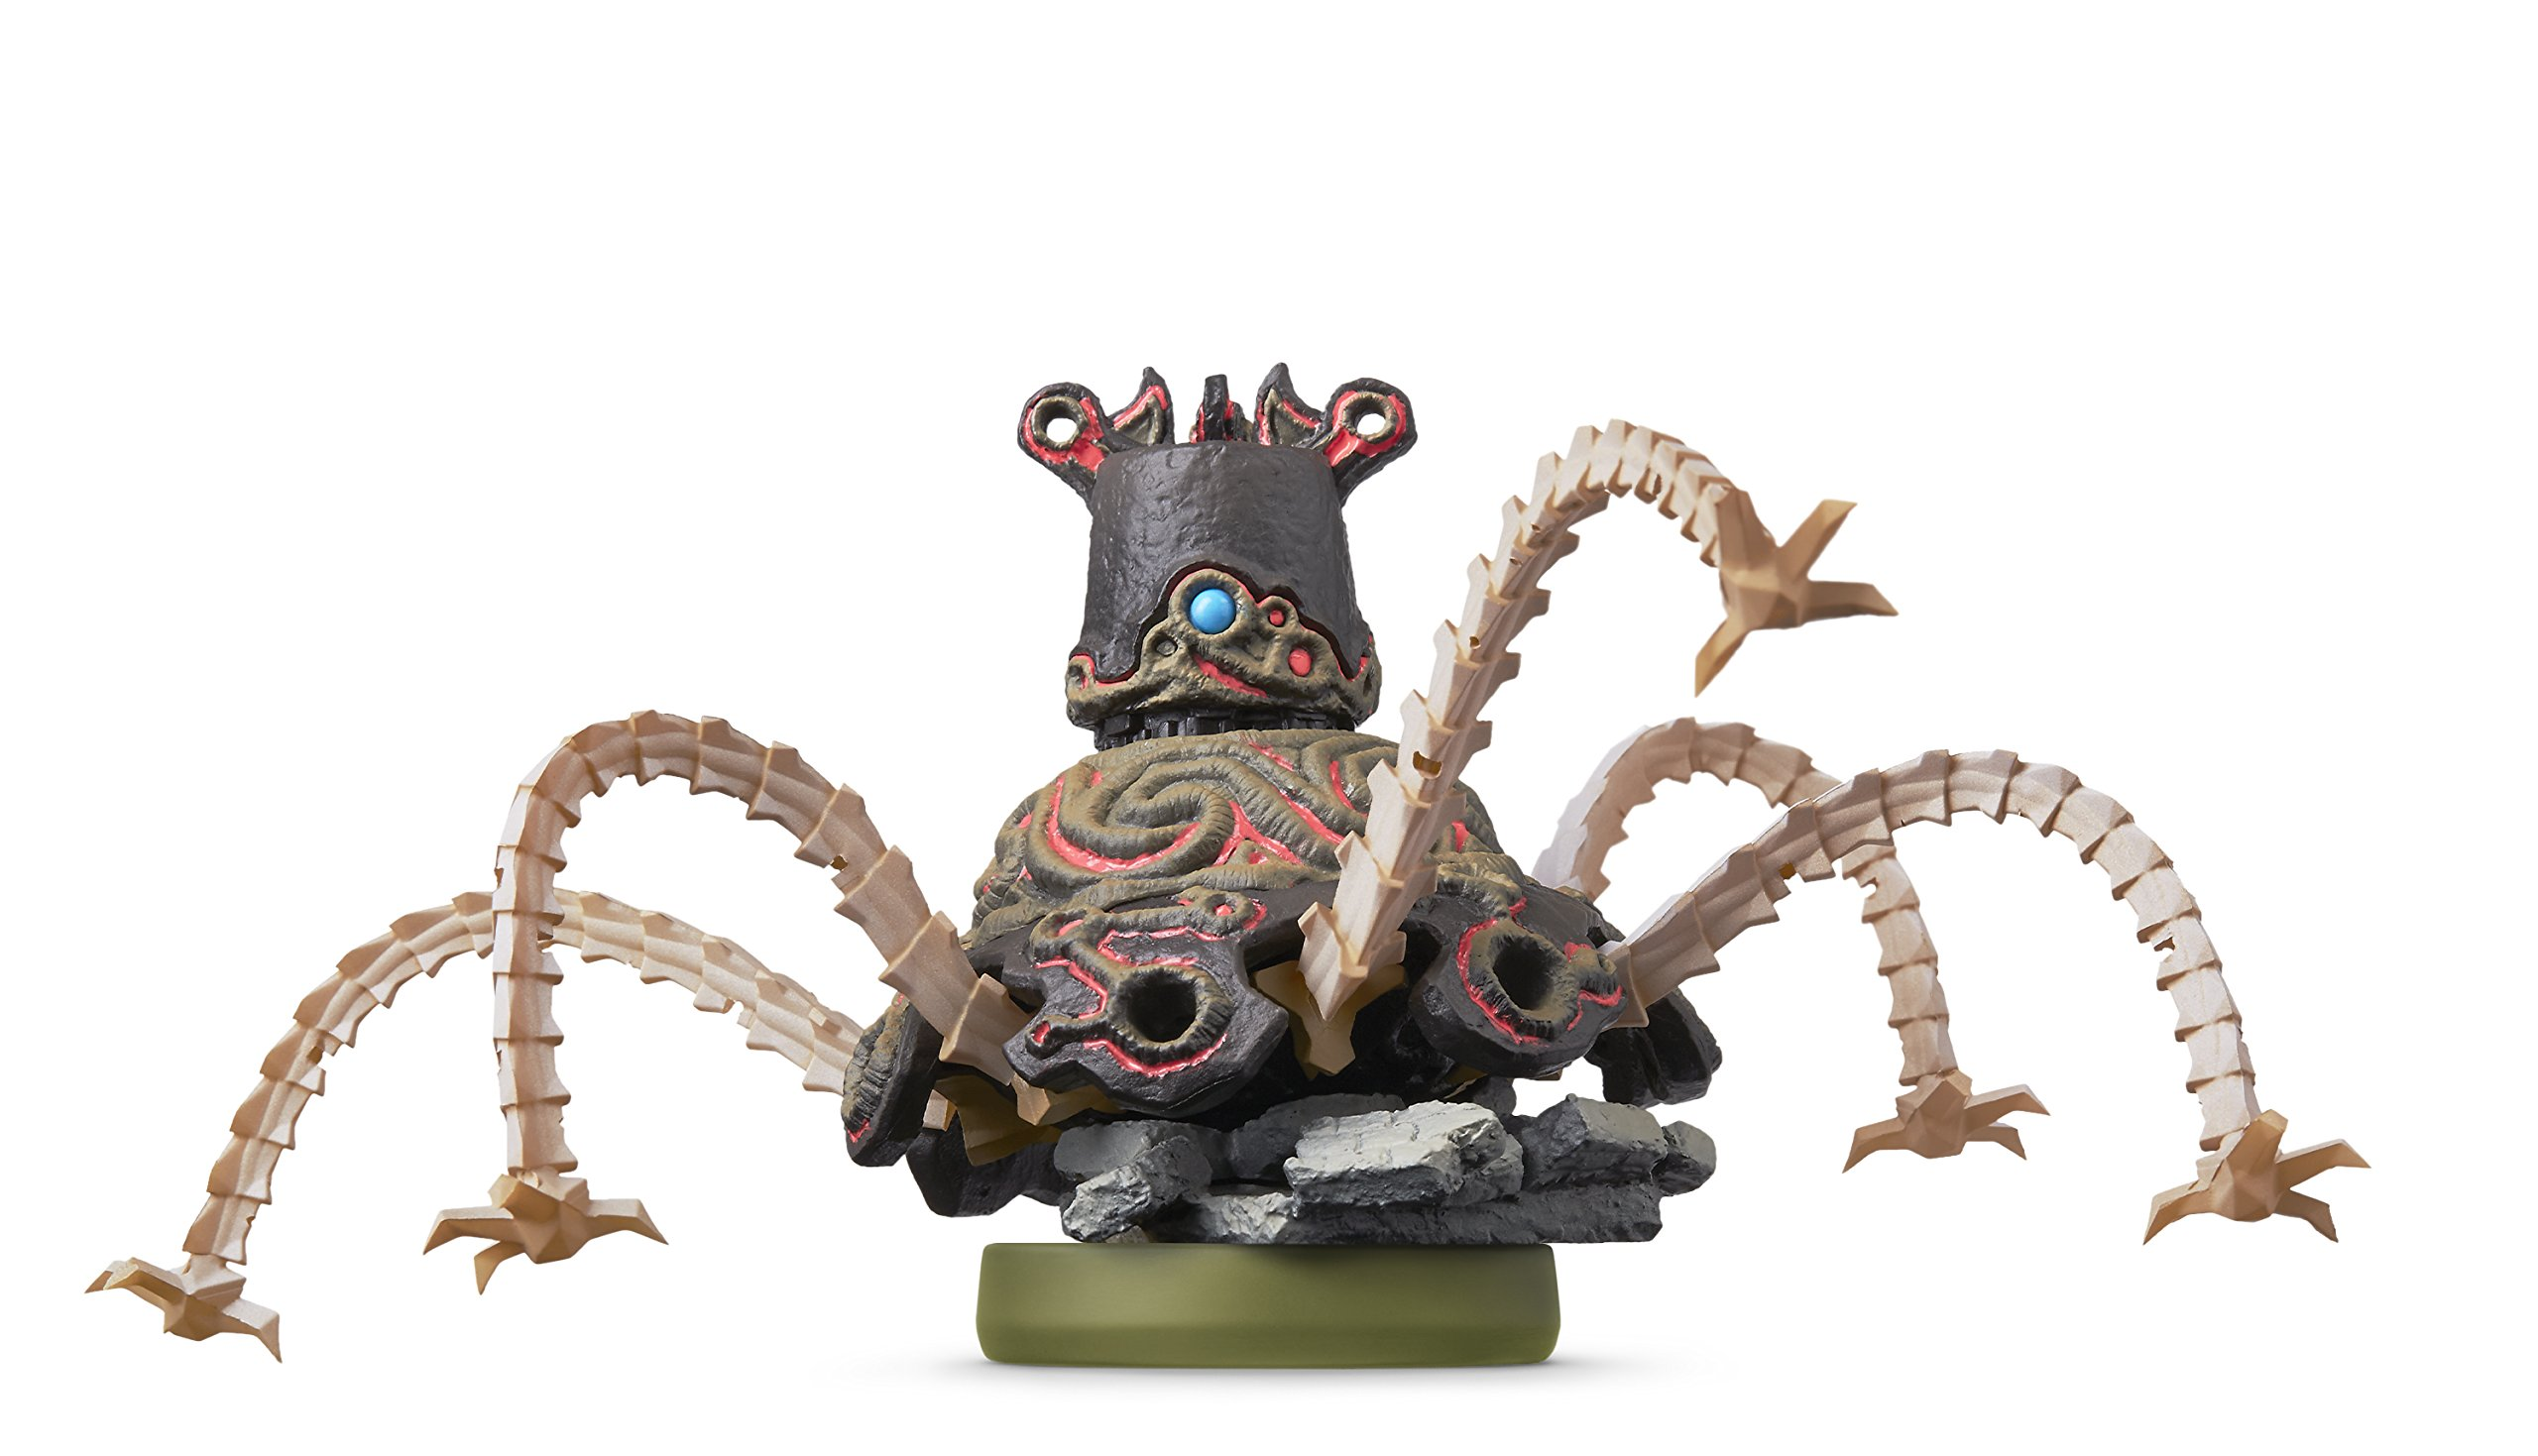 Buy Nintendo Amiibo Guardian Now!